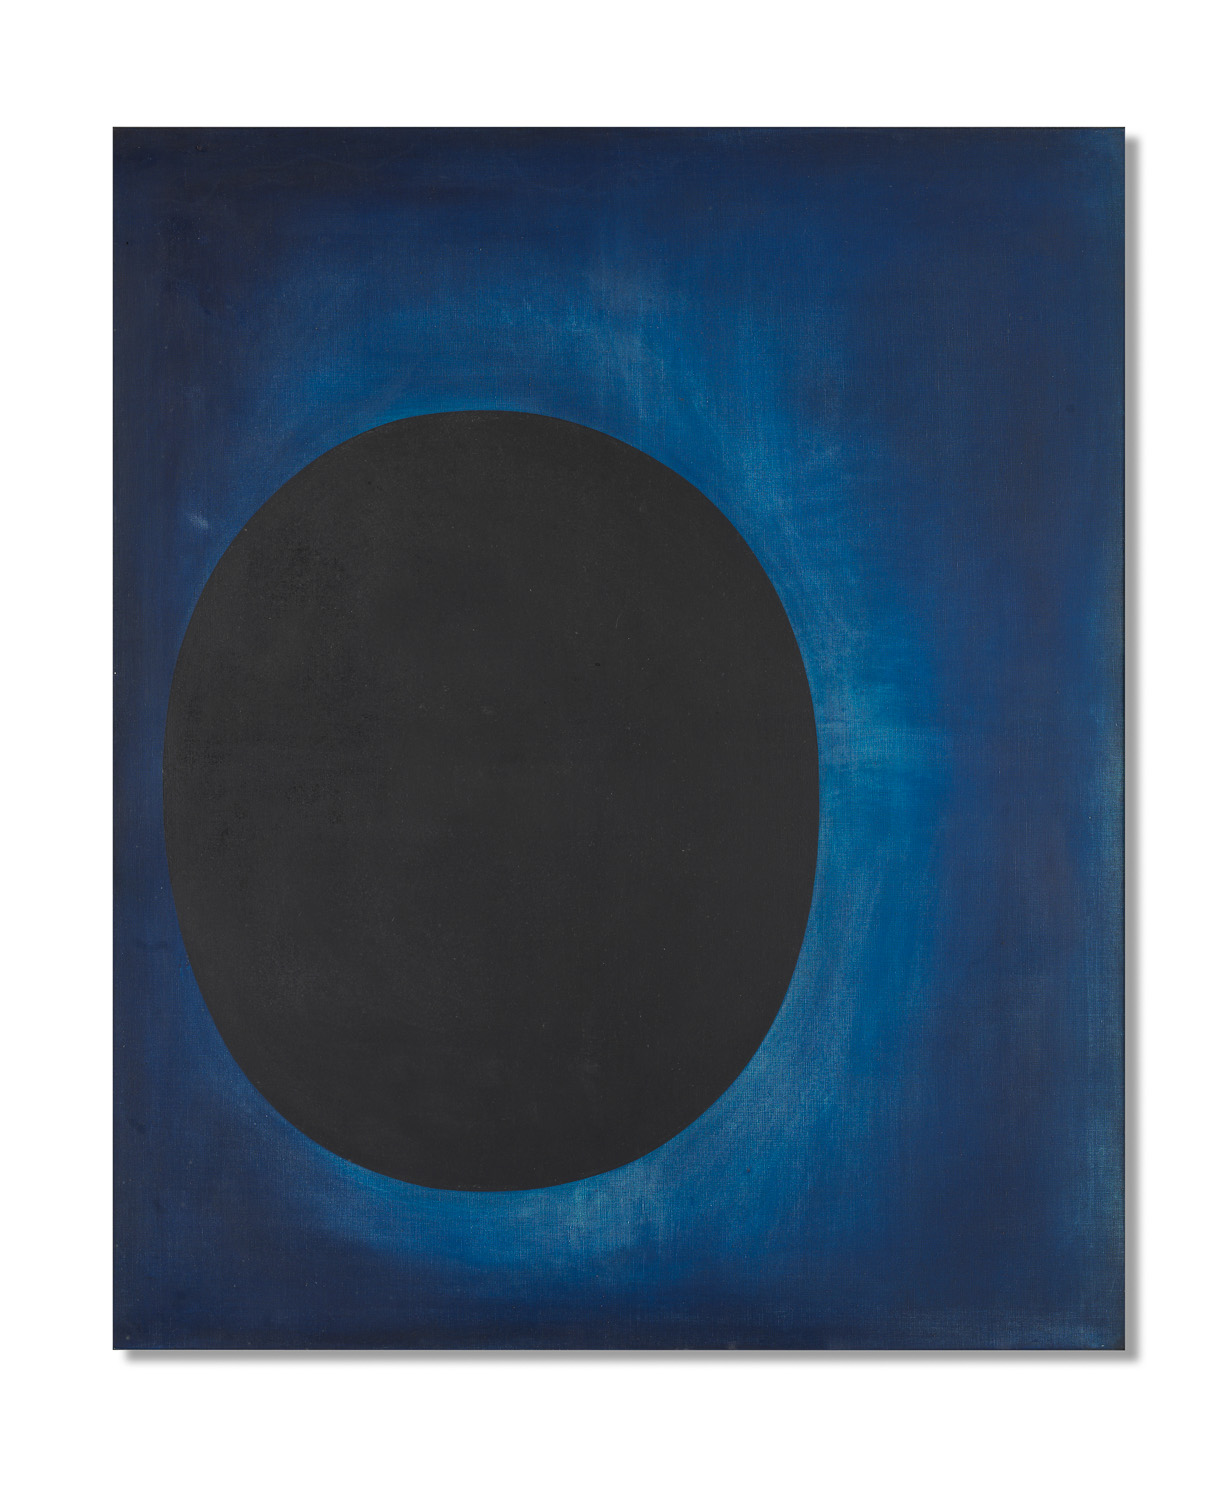 Richard Lin, 'Untitled (The Black Sun)', 1958-1960, oil on canvas, 152.7 x 127.5cm. Image courtesy of Bonhams.